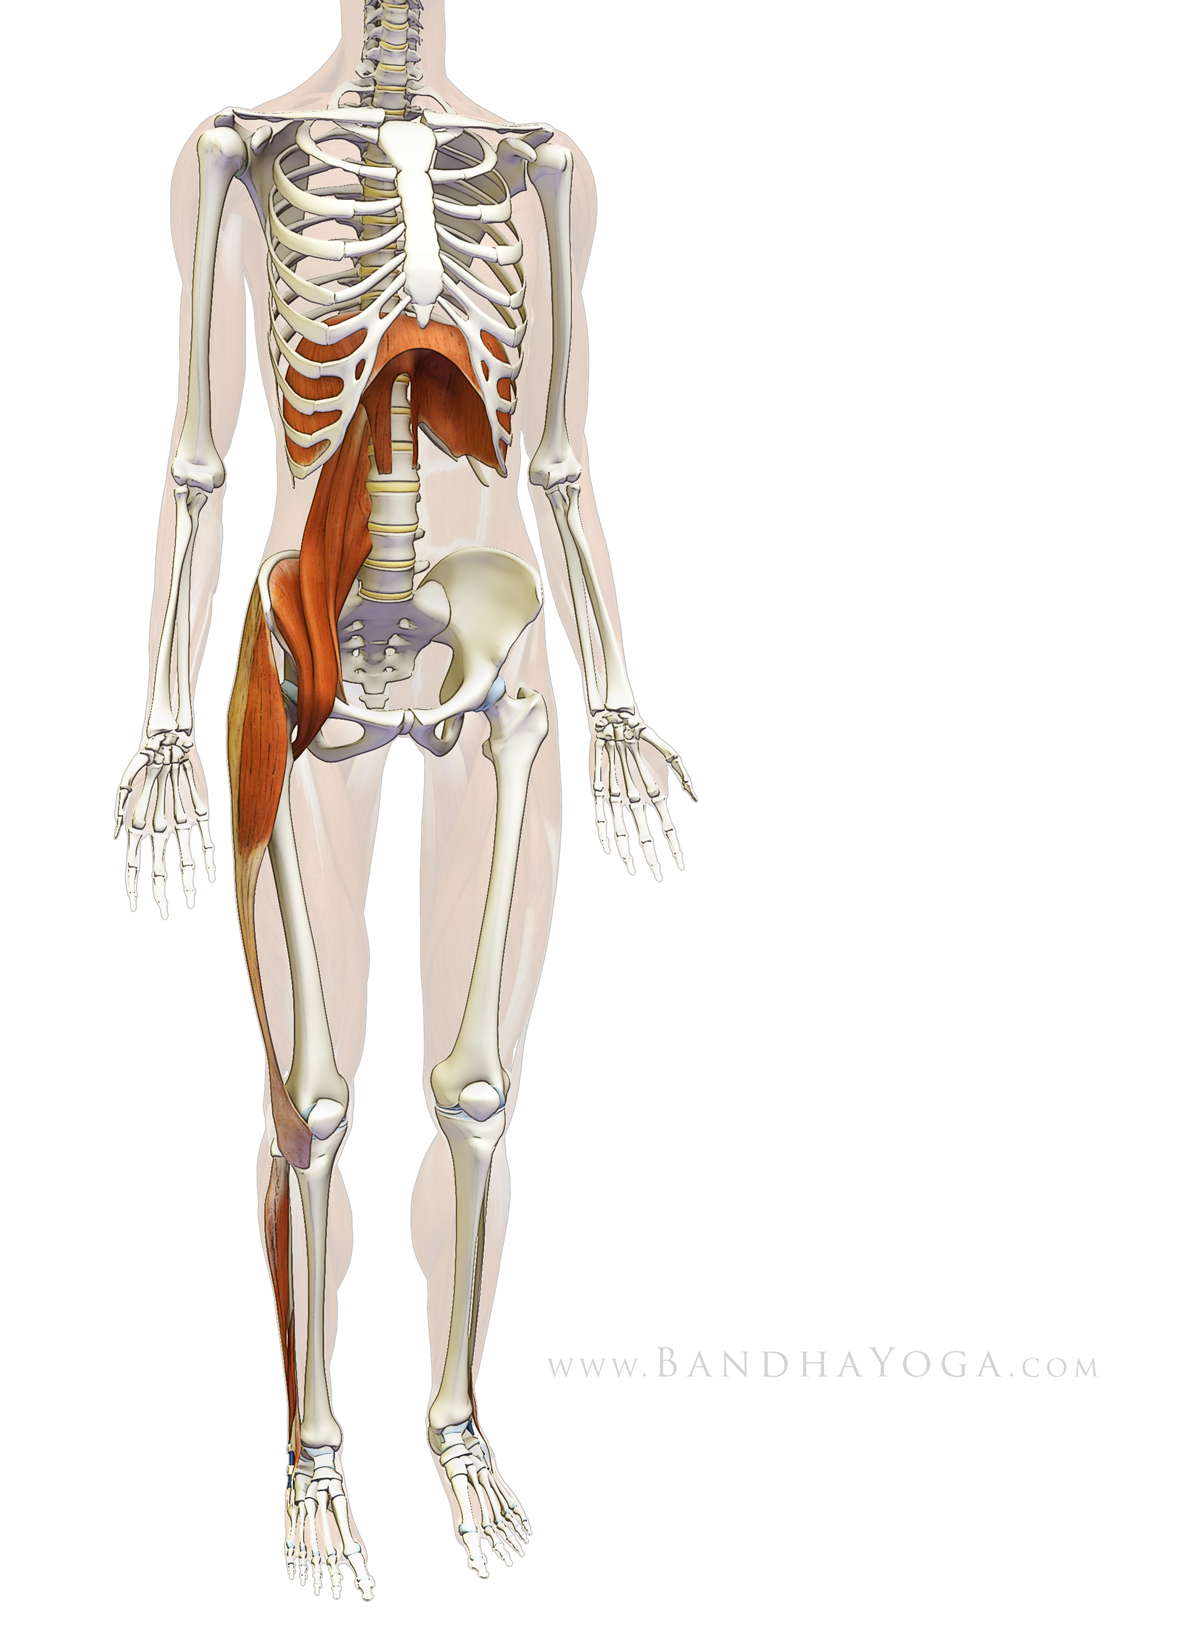 Sankalpa, Visualization, and Yoga: The Diaphragm Psoas Connection ...